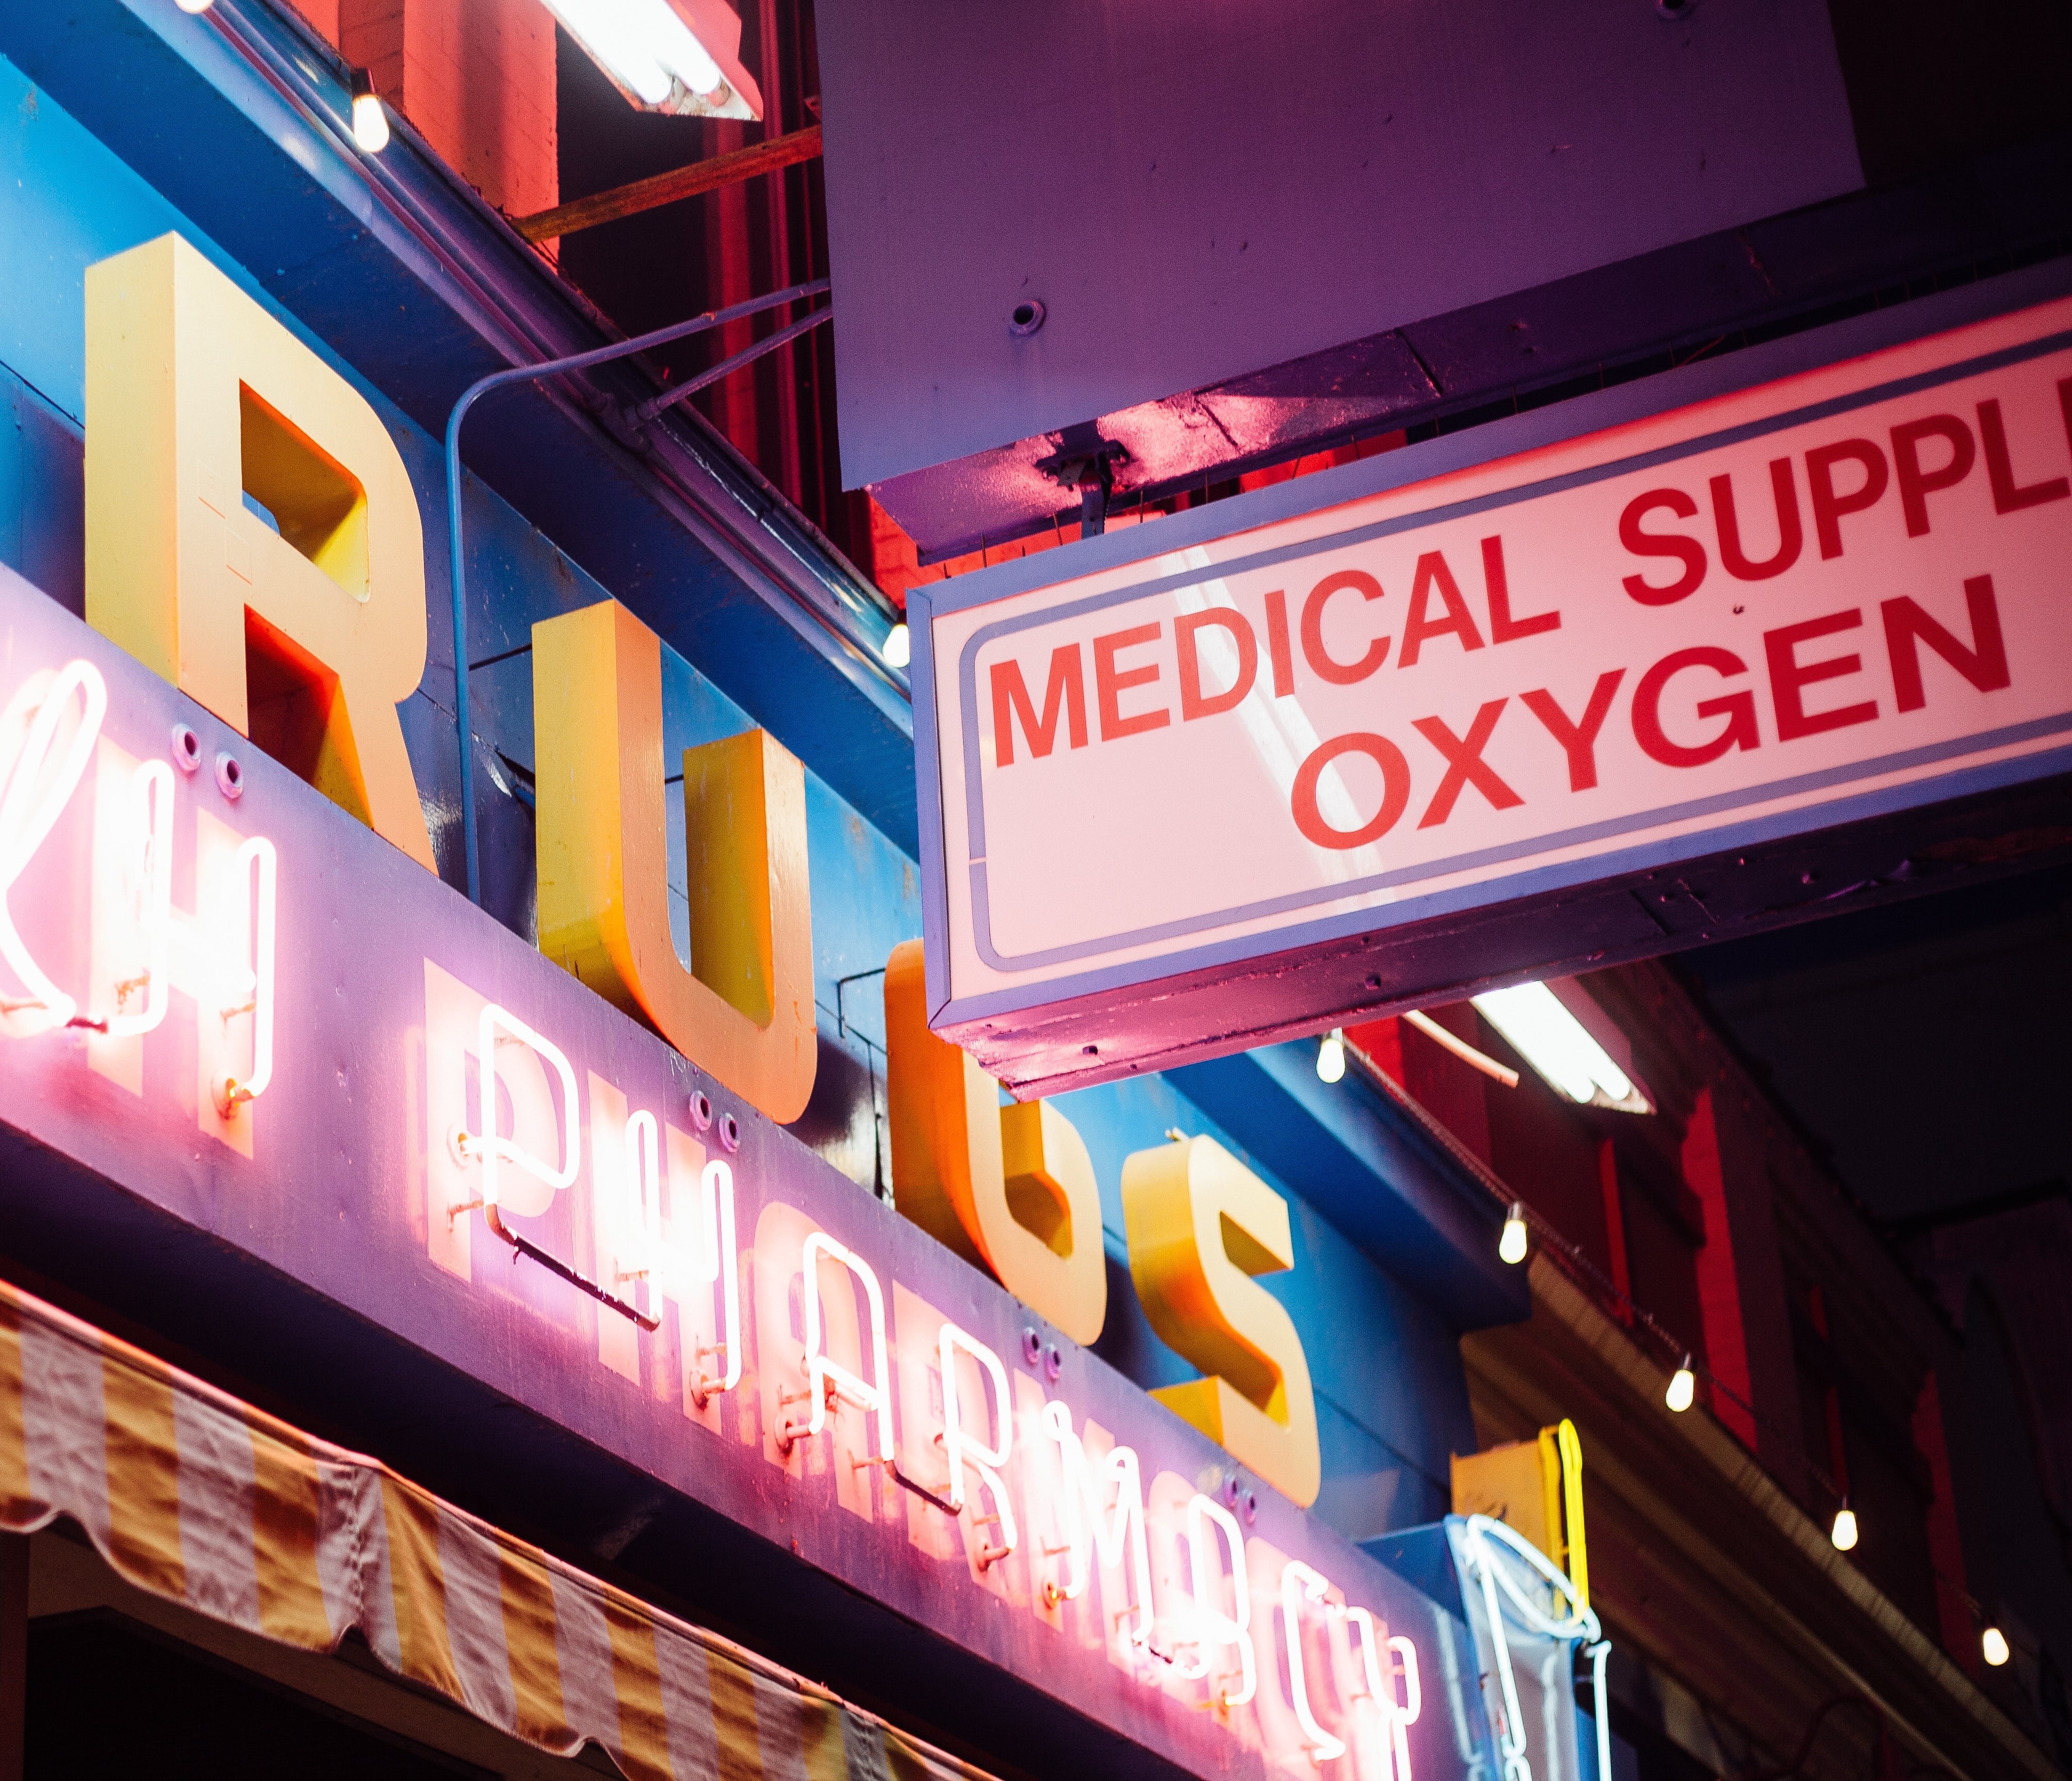 medical supply oxygen store signage